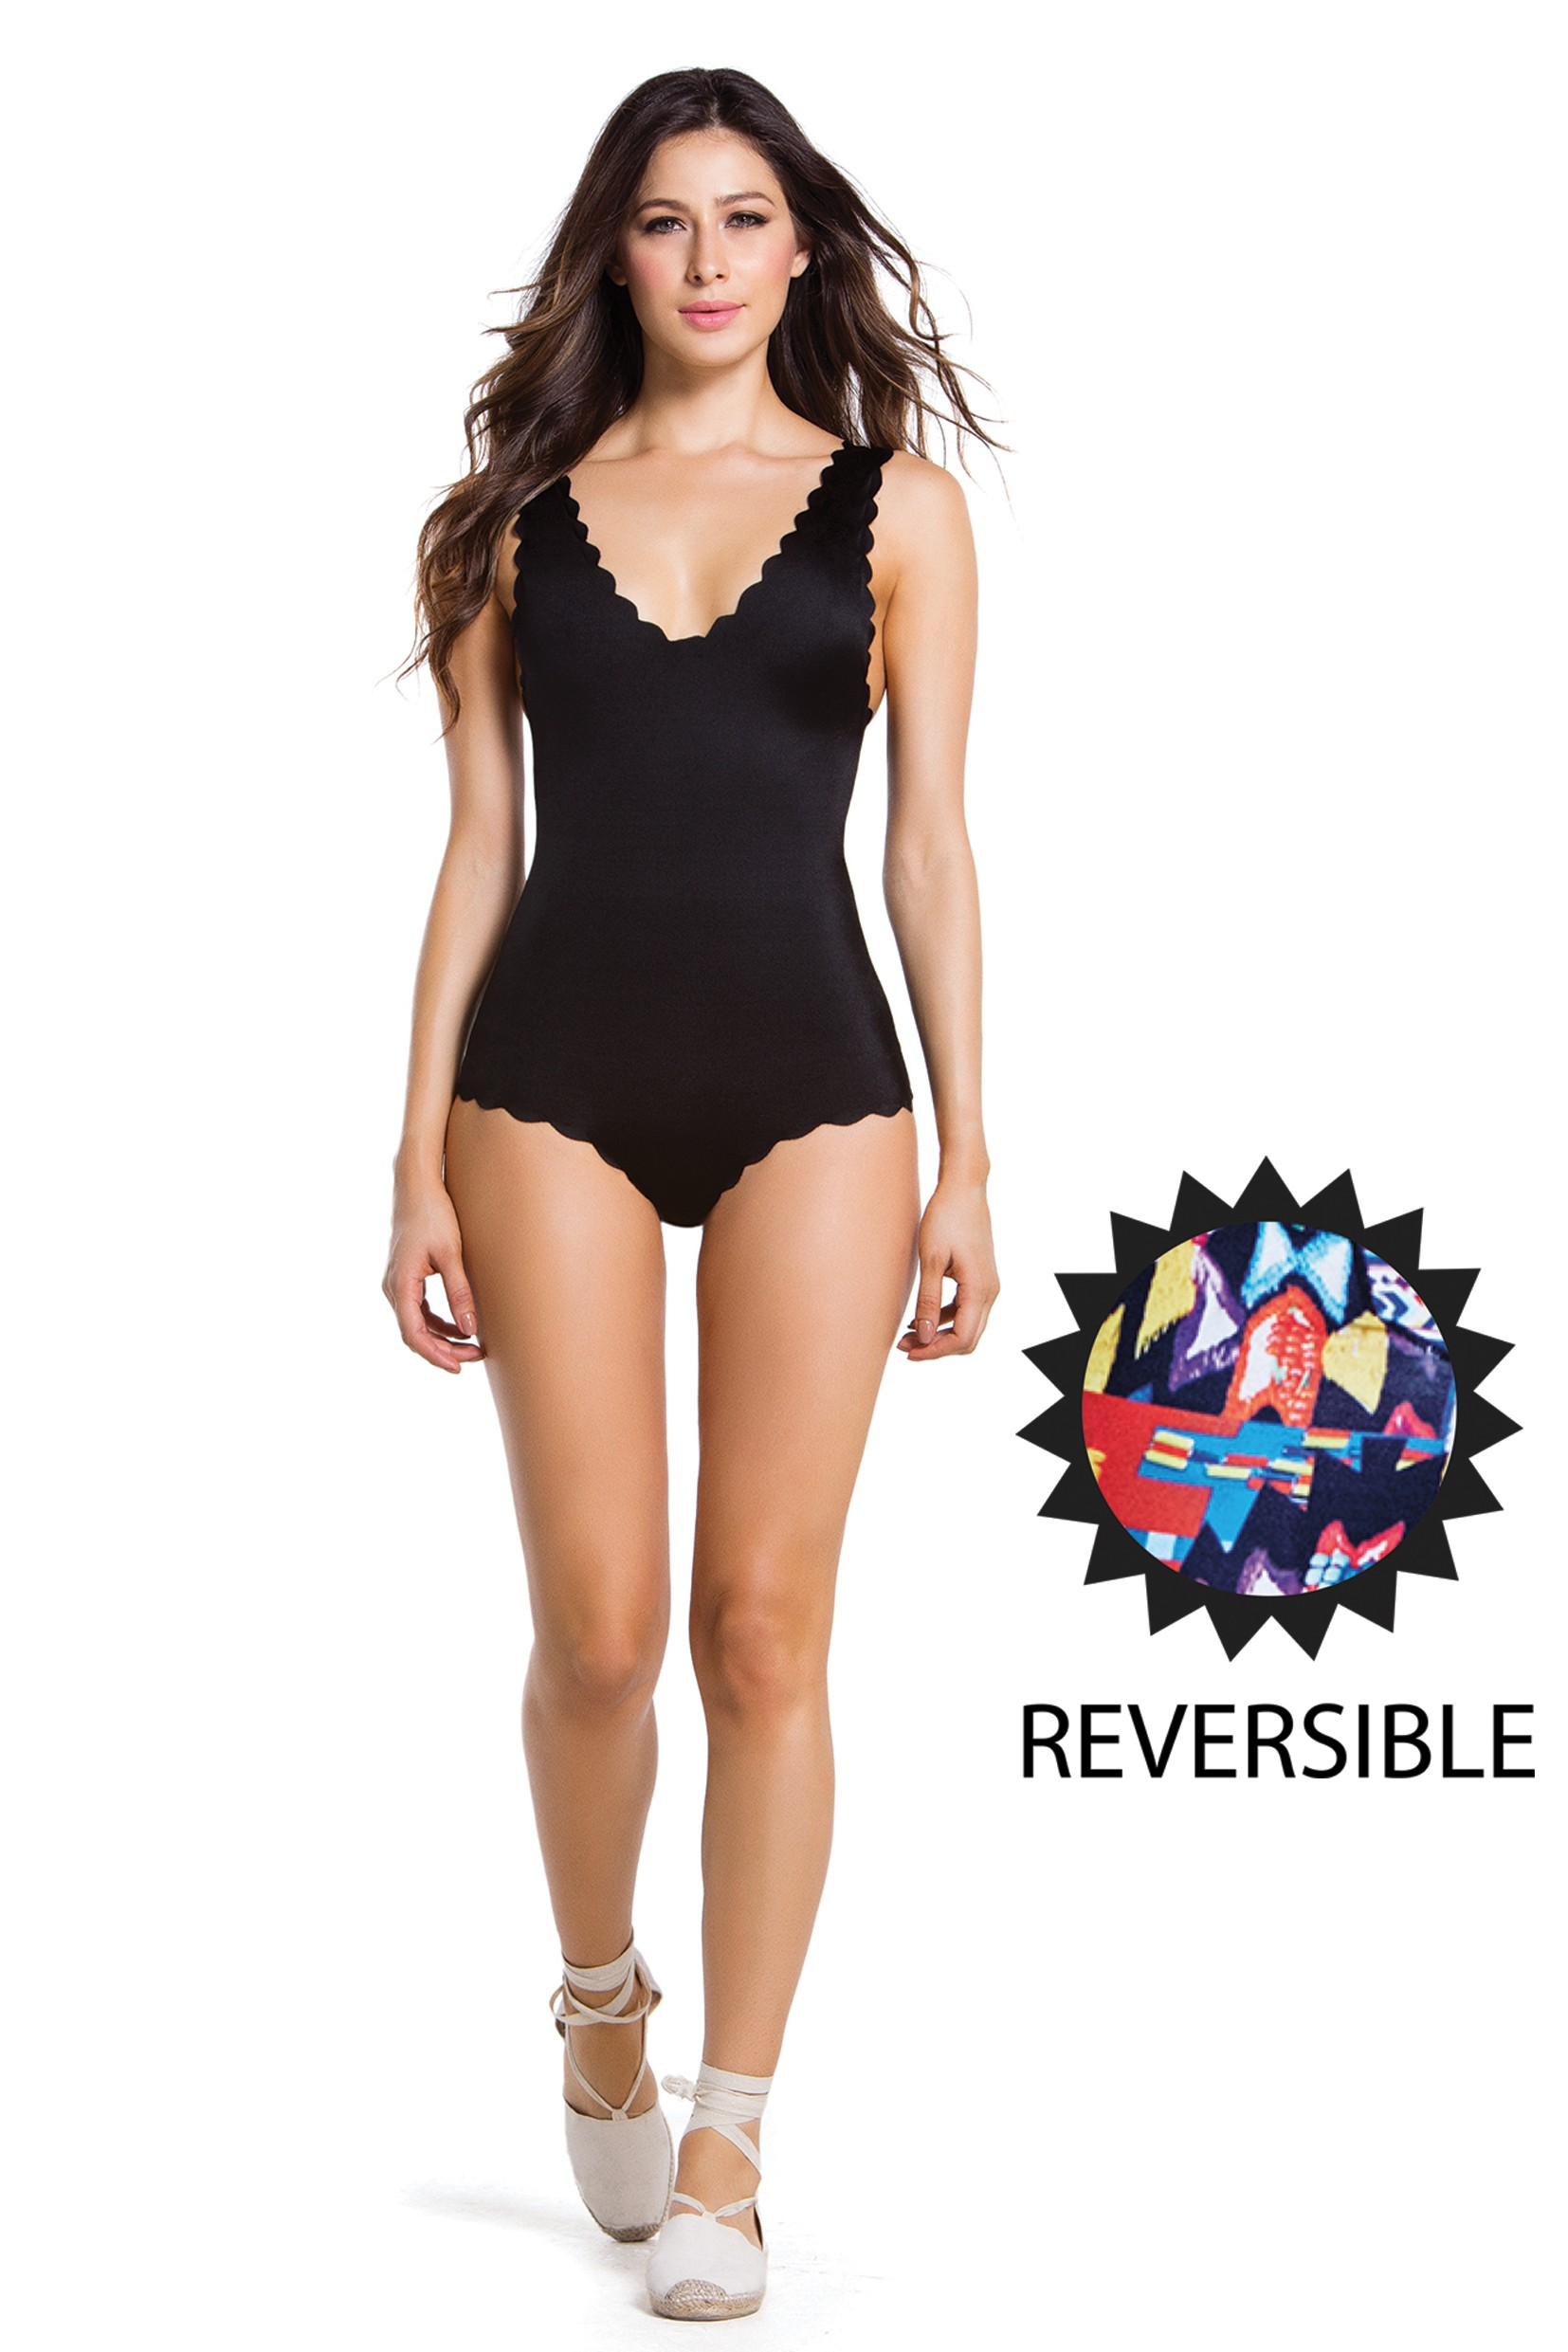 B. MAREA V.B. BLACK ONE PIECE